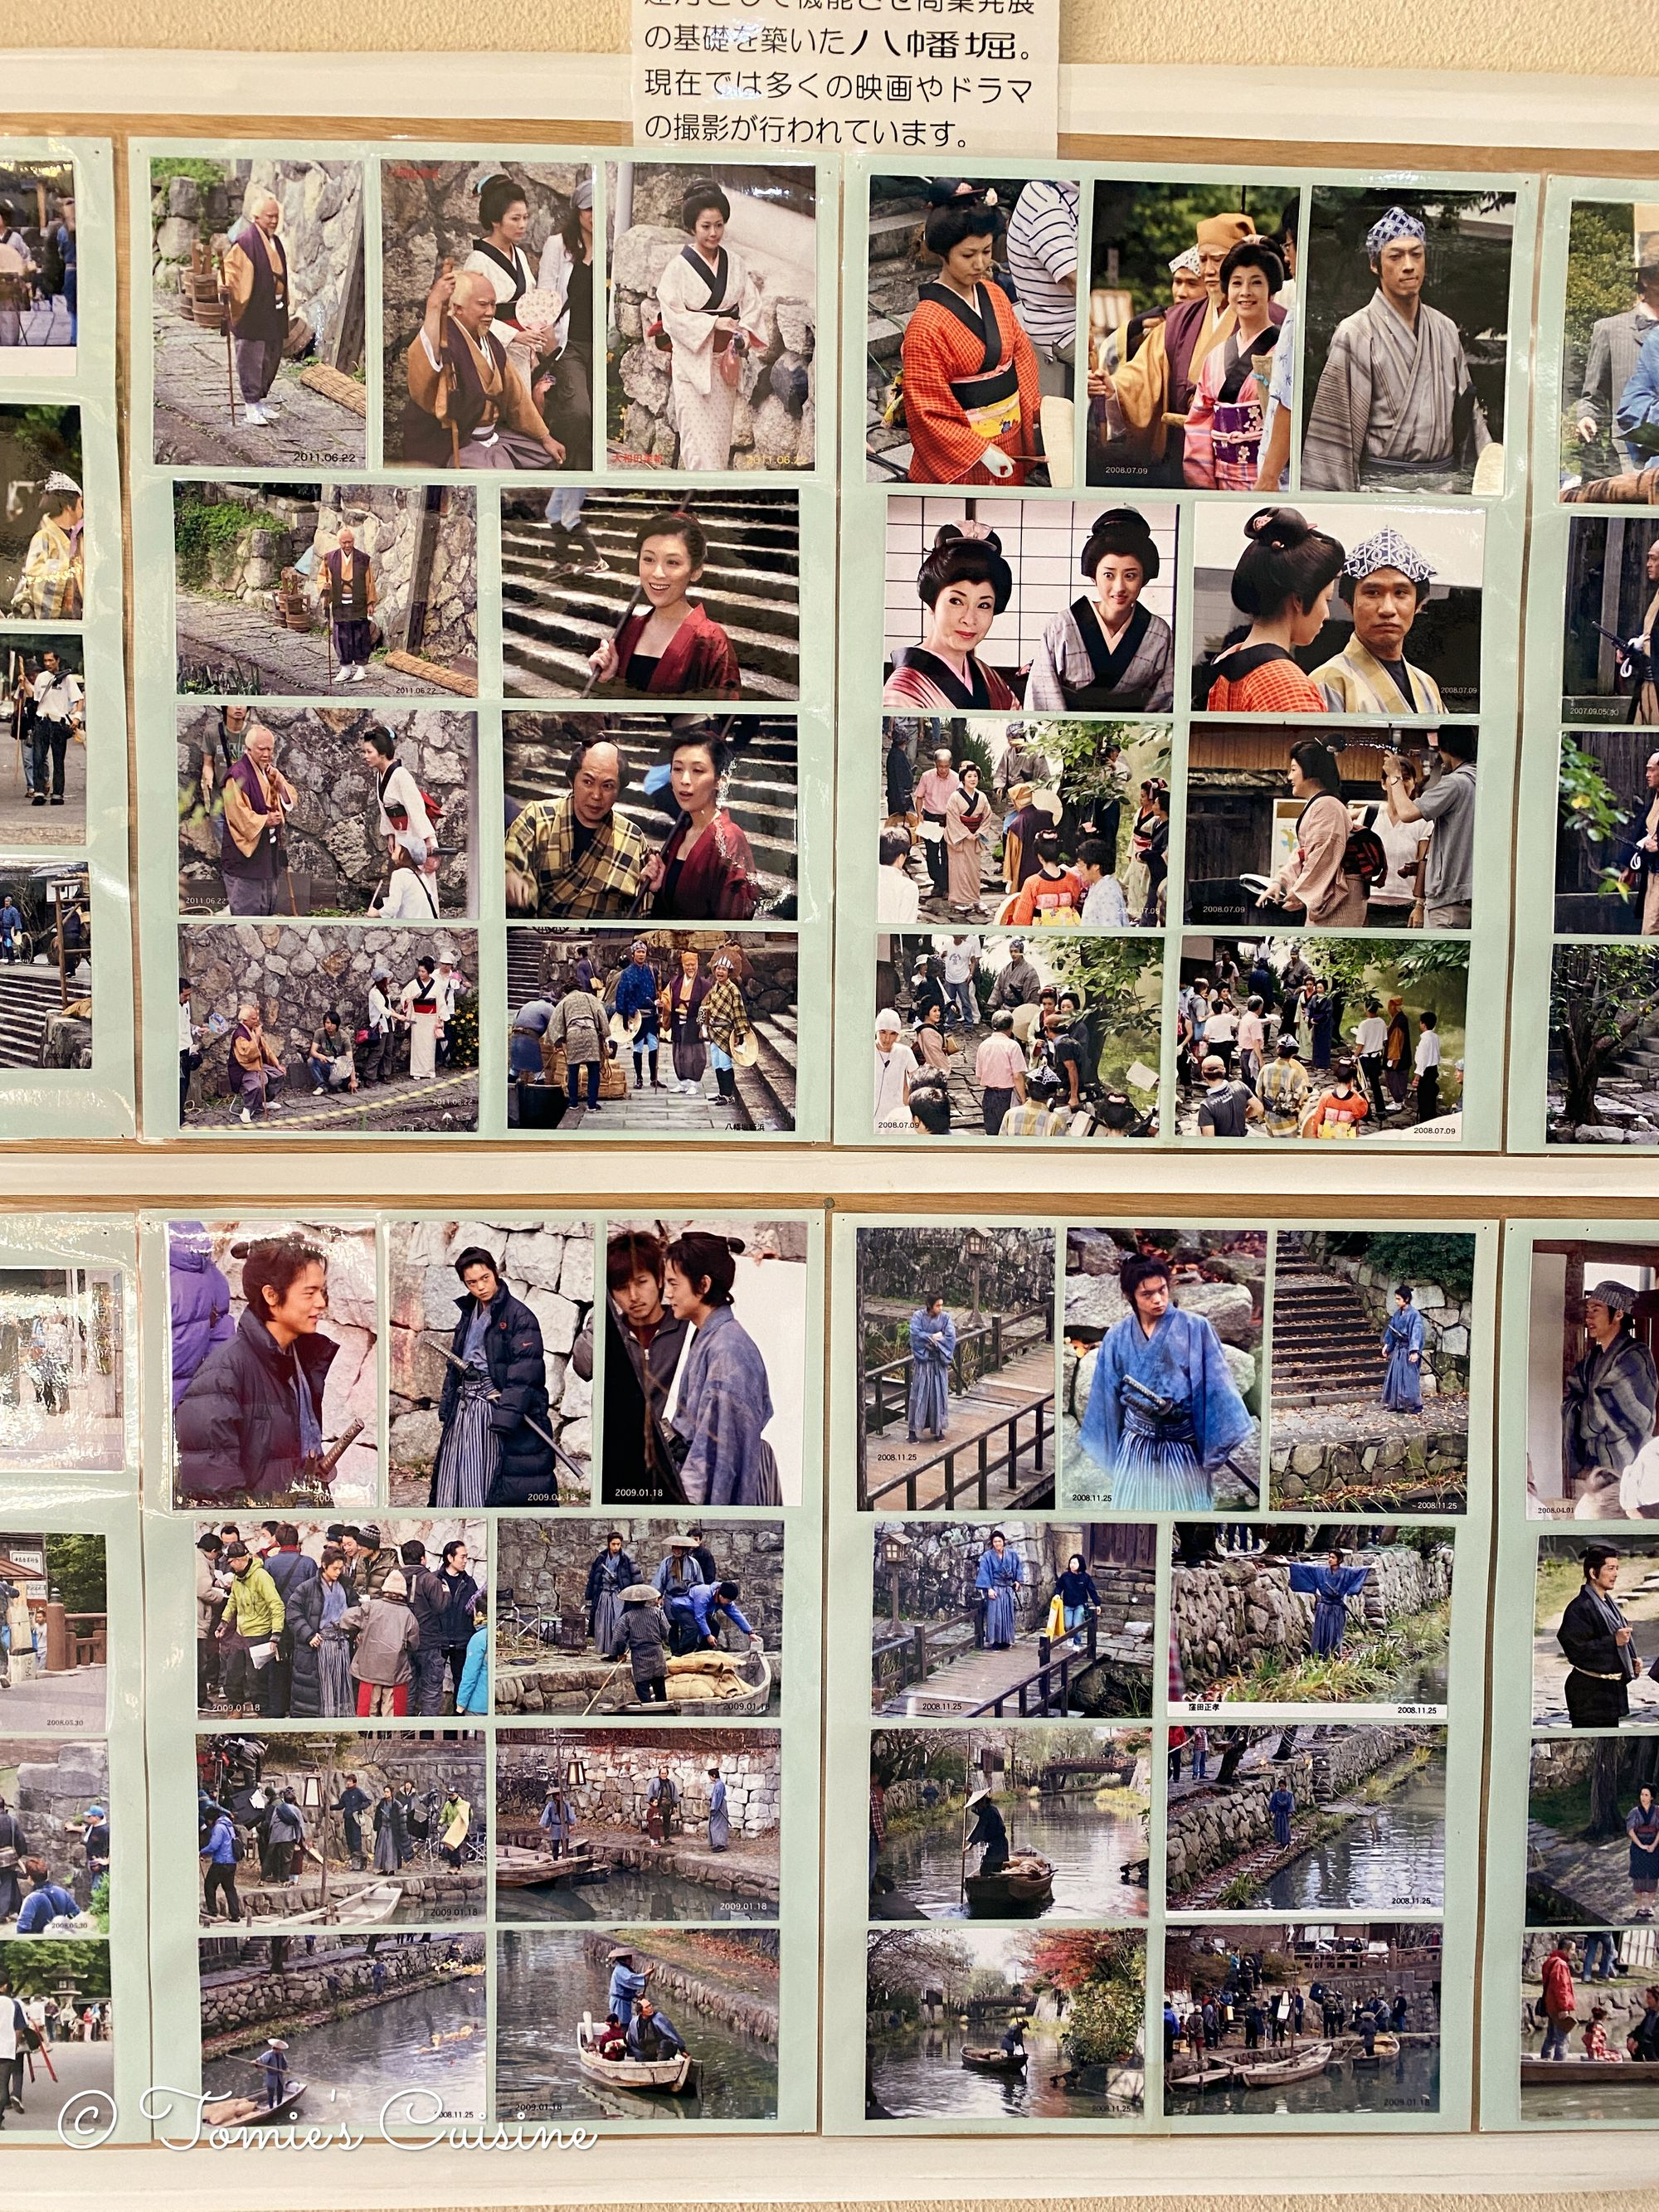 Some of the movies that were shot in Omihachiman